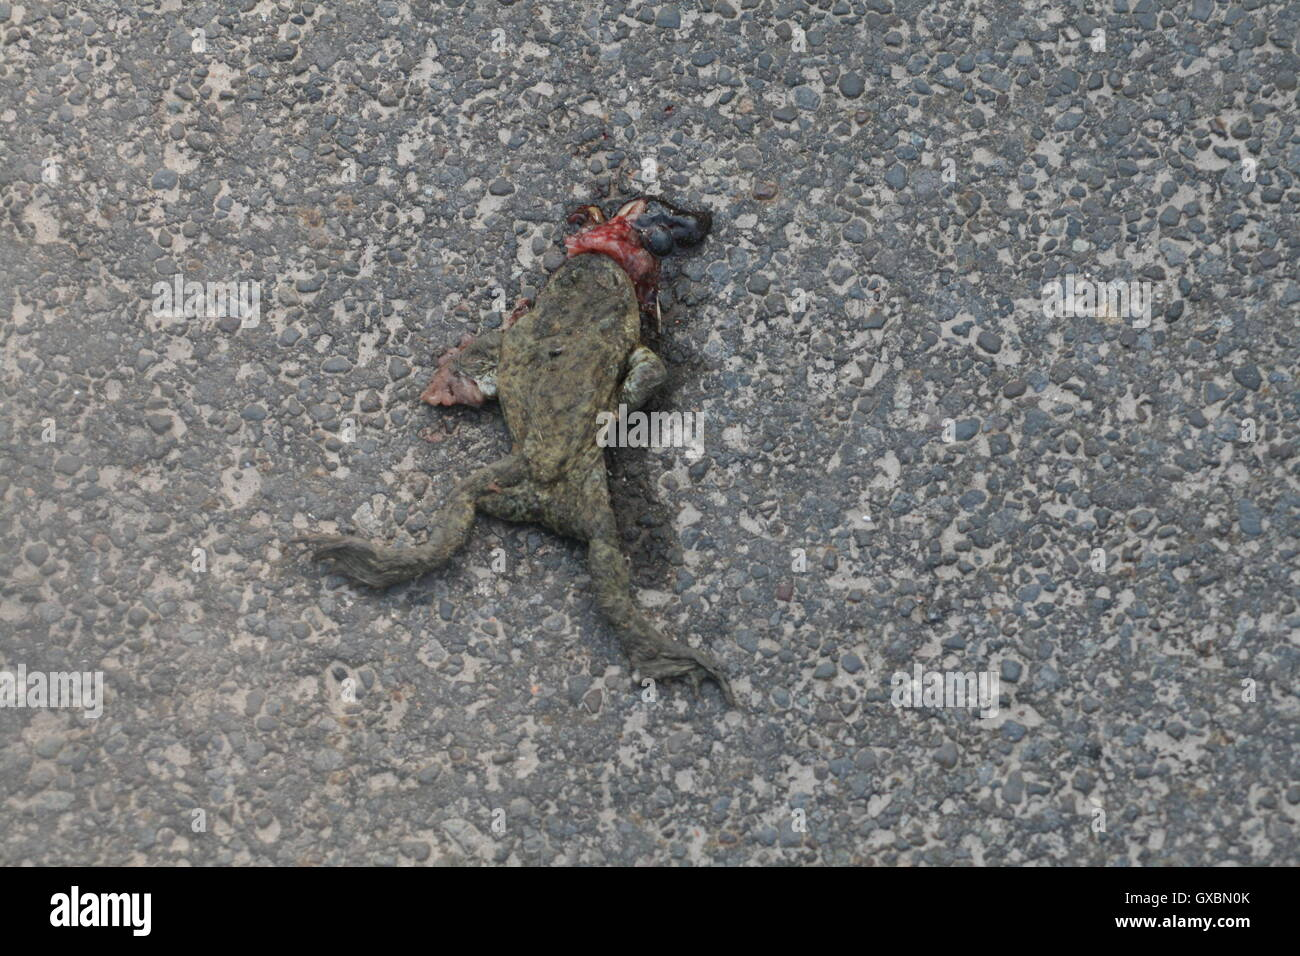 A frog squashed by a car on a road with its innards coming out through its mouth. Stock Photo